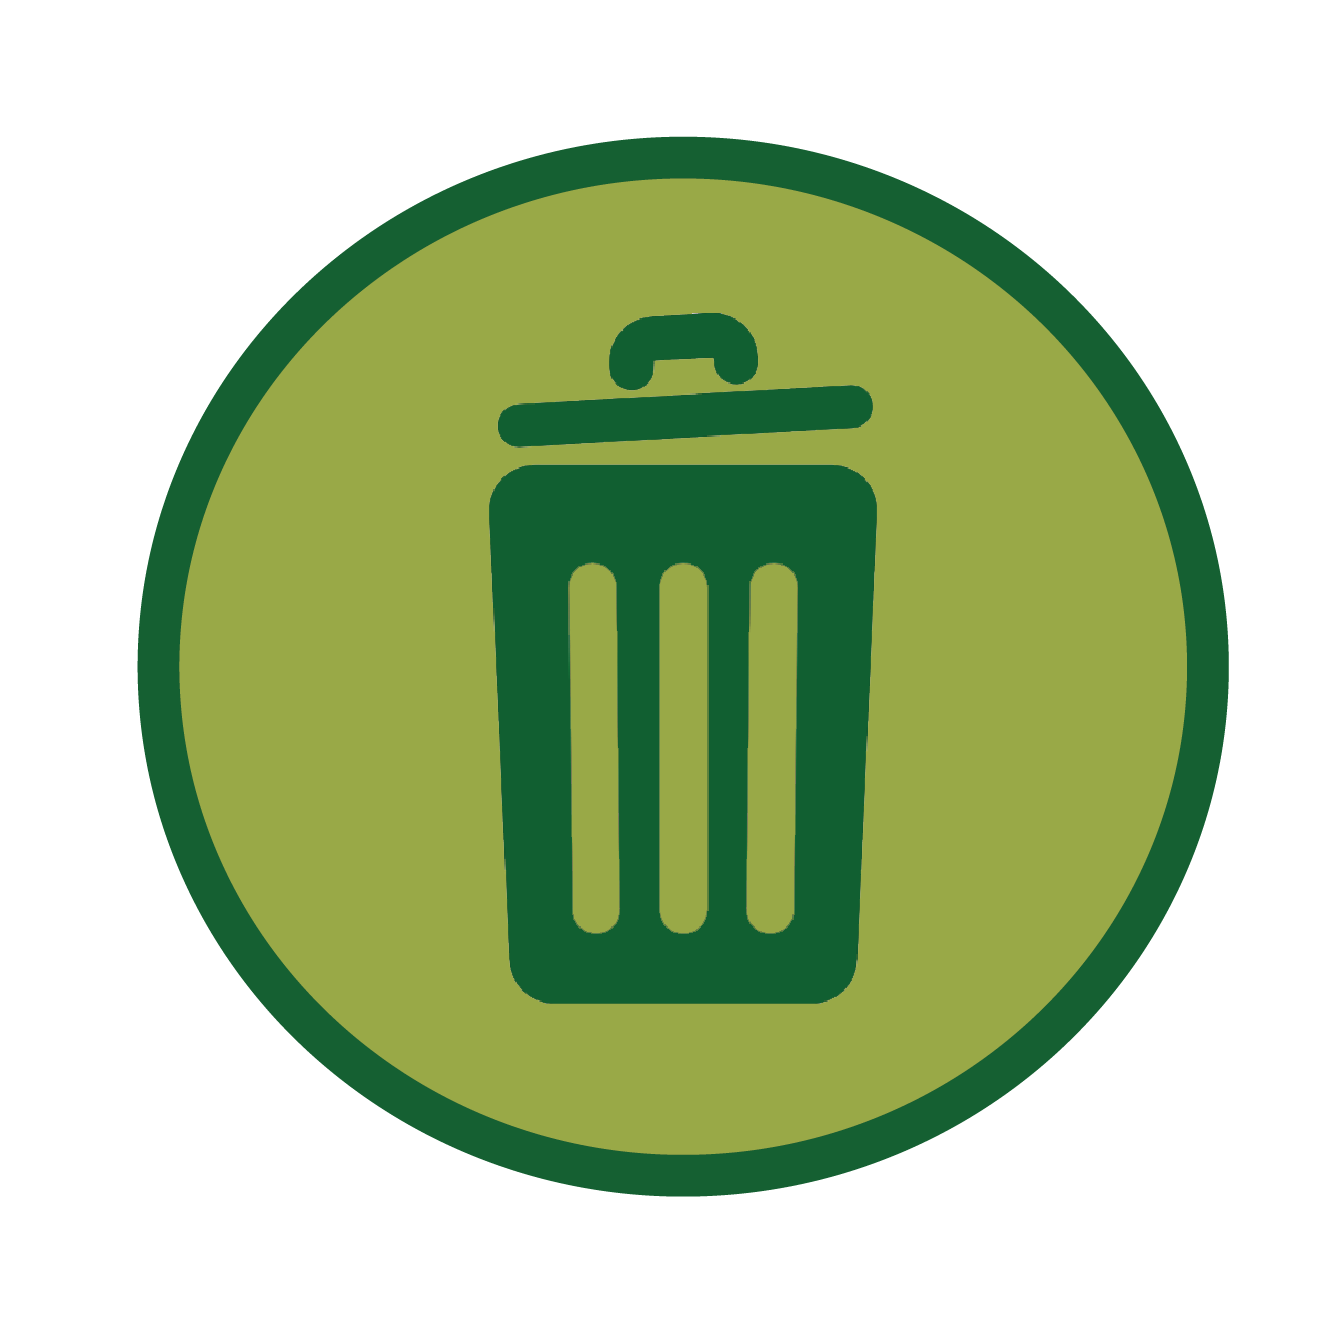 TrashCollectionIcon-01